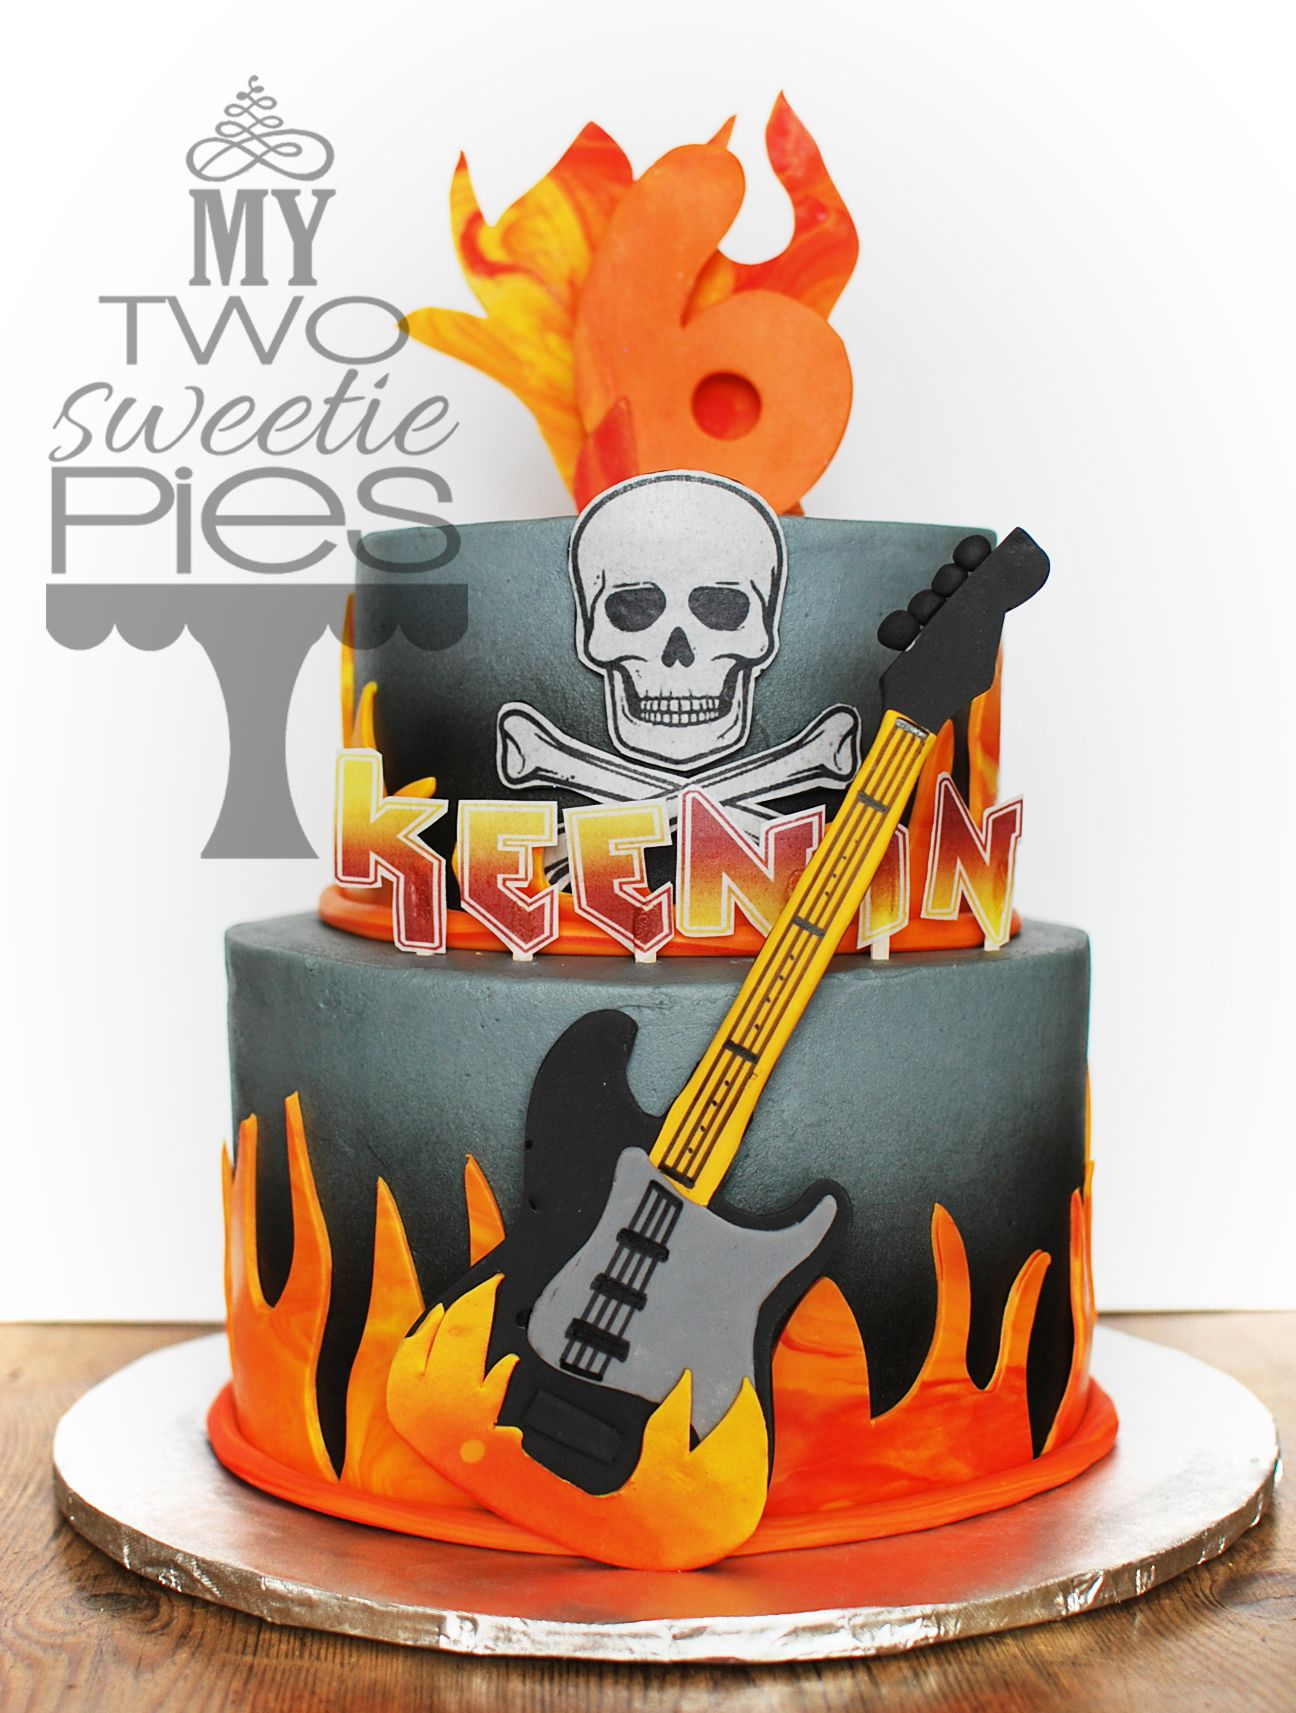 Rock N Roll Cake Bolos Decorados Decoracao De Bolo Bolo